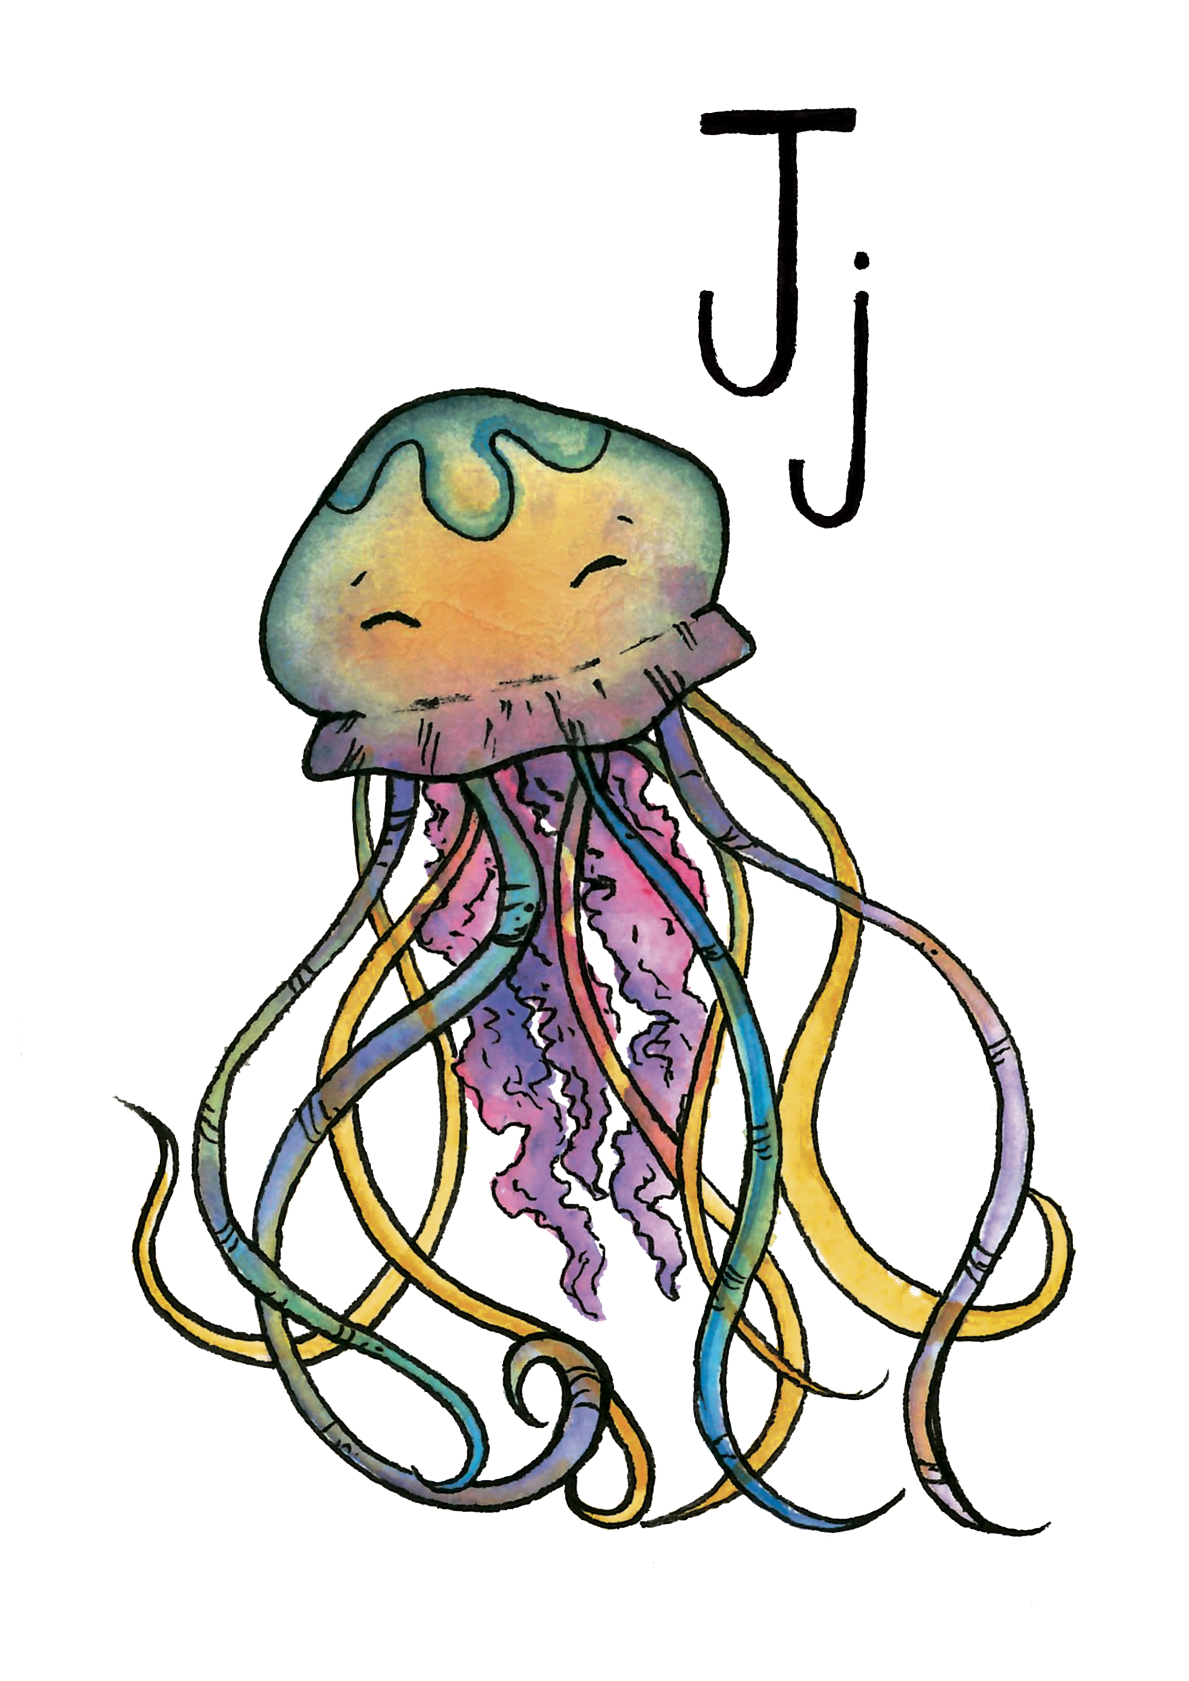 J for Jellyfish - Watercolour and ink